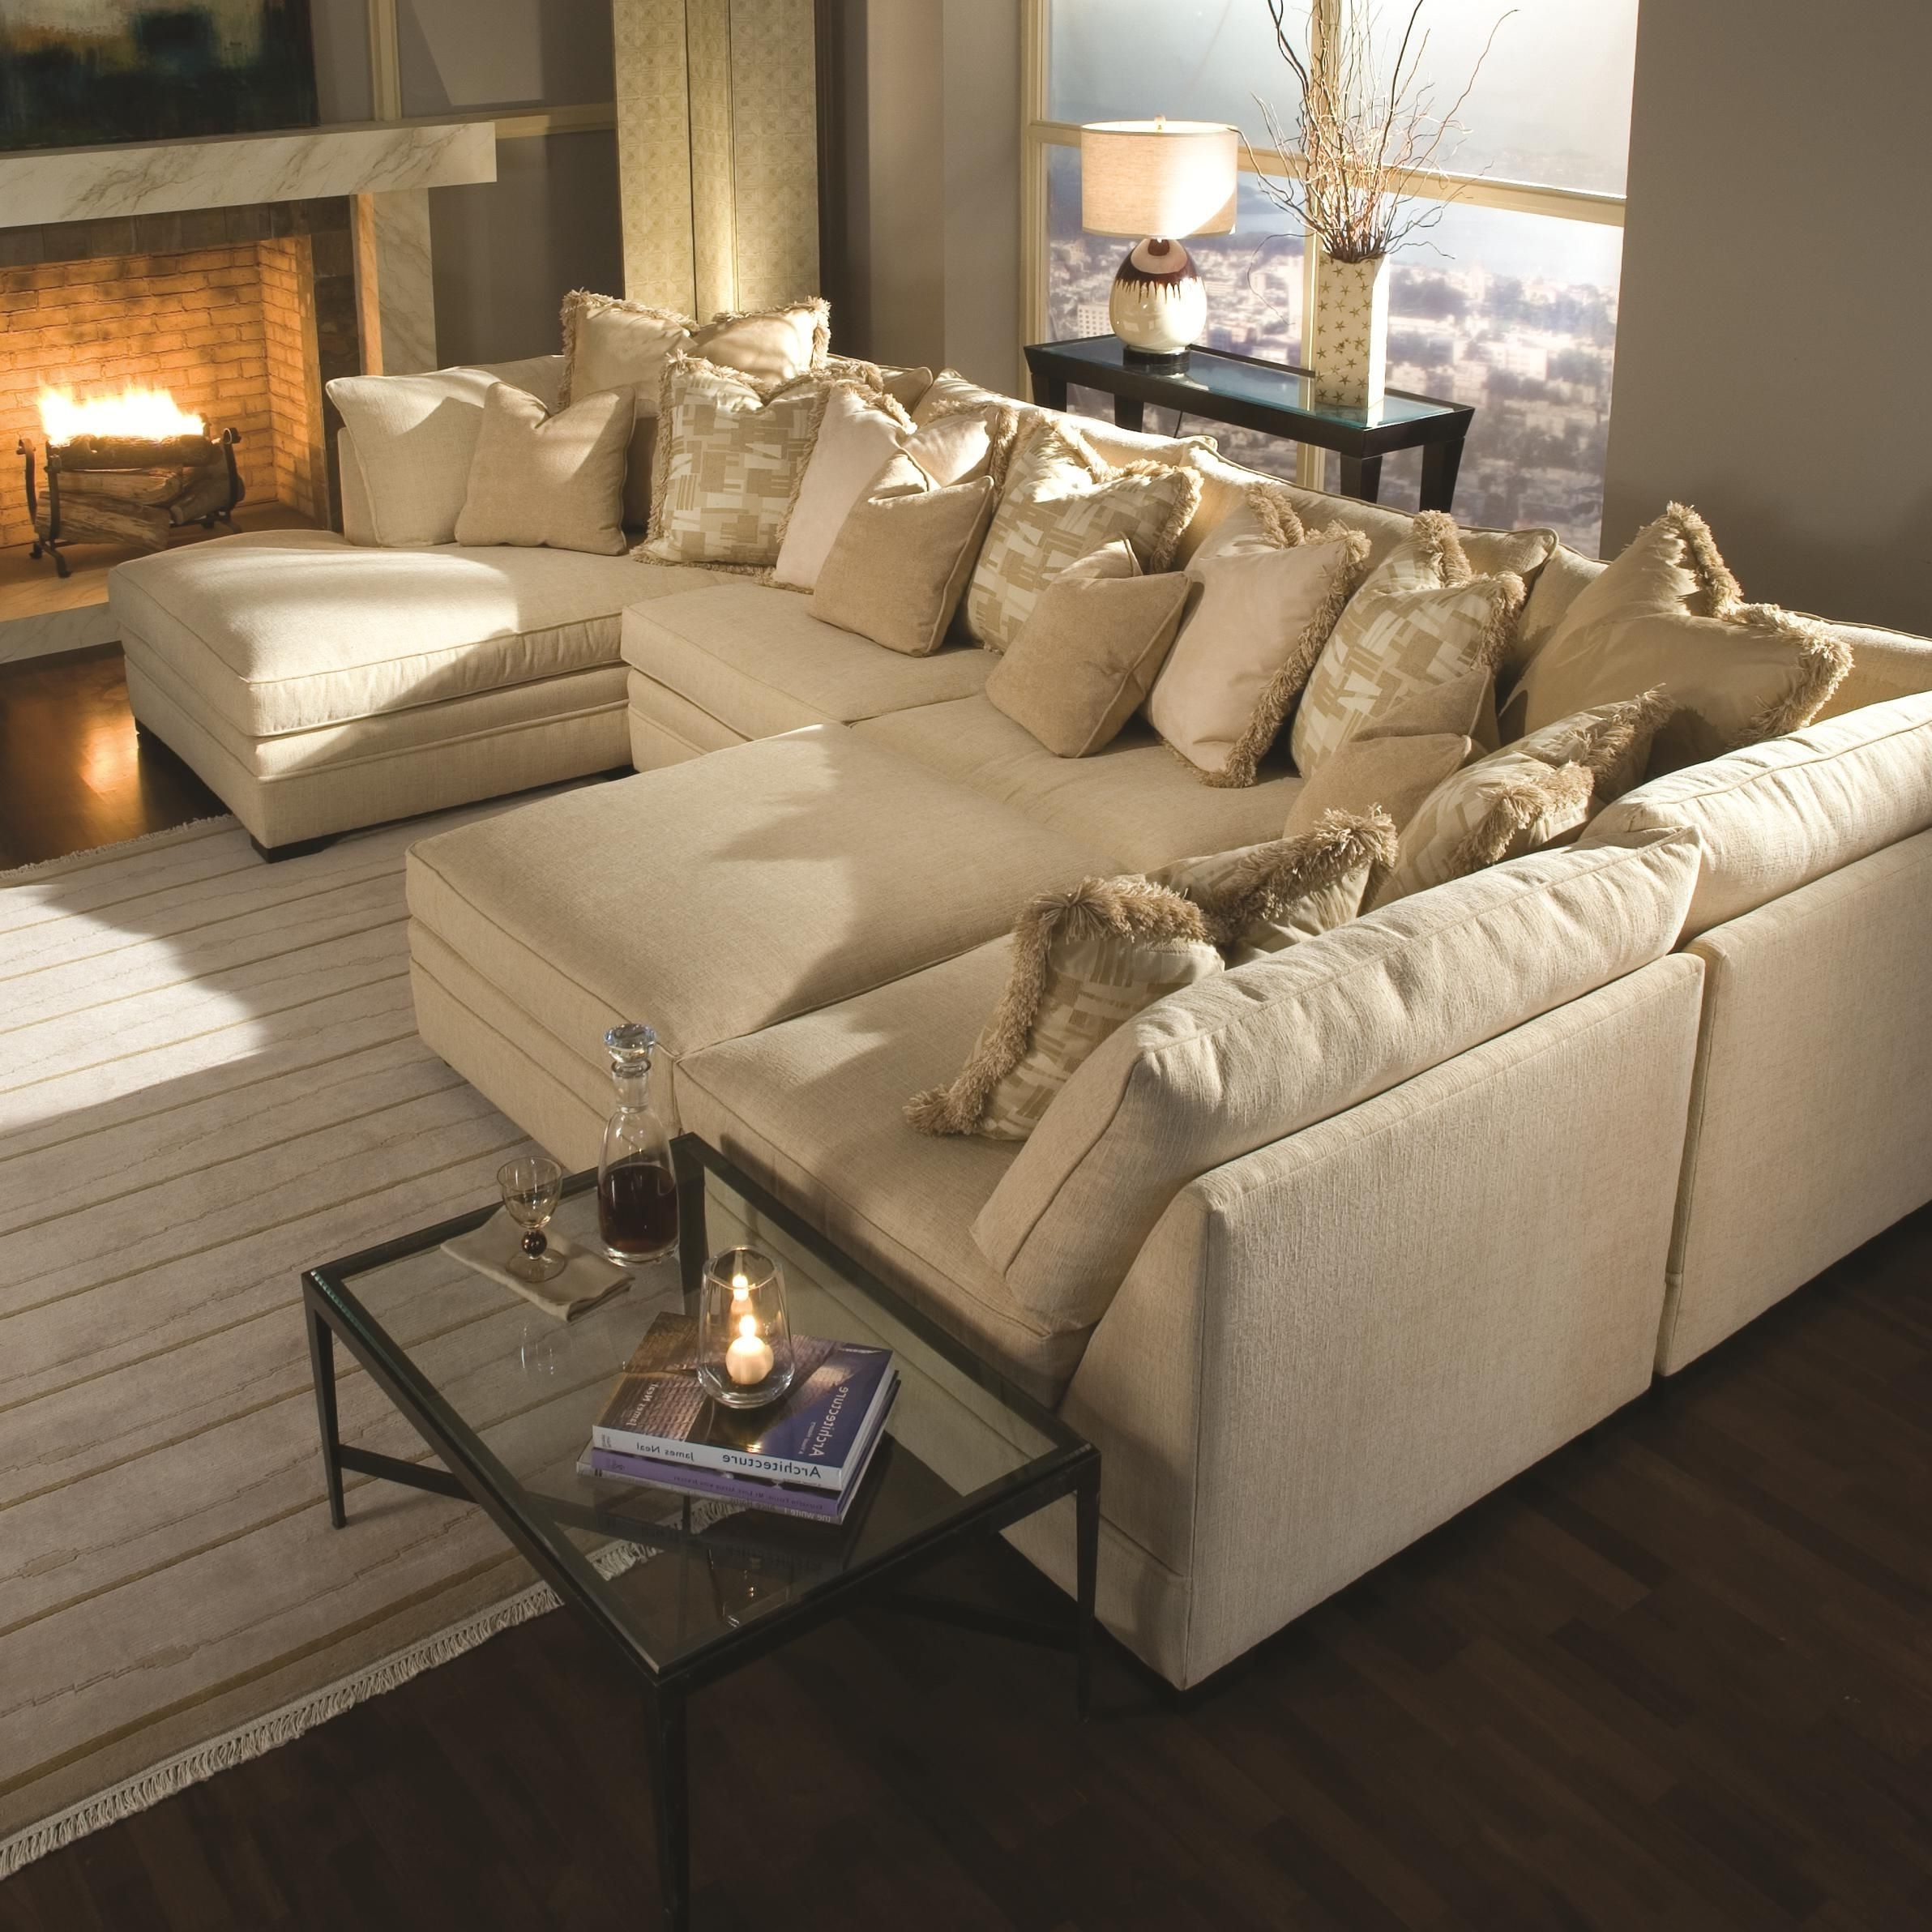 Huge U Shaped Sectionals Throughout Fashionable Large Brown Leather U Shaped Sofa – Google Search (View 9 of 15)